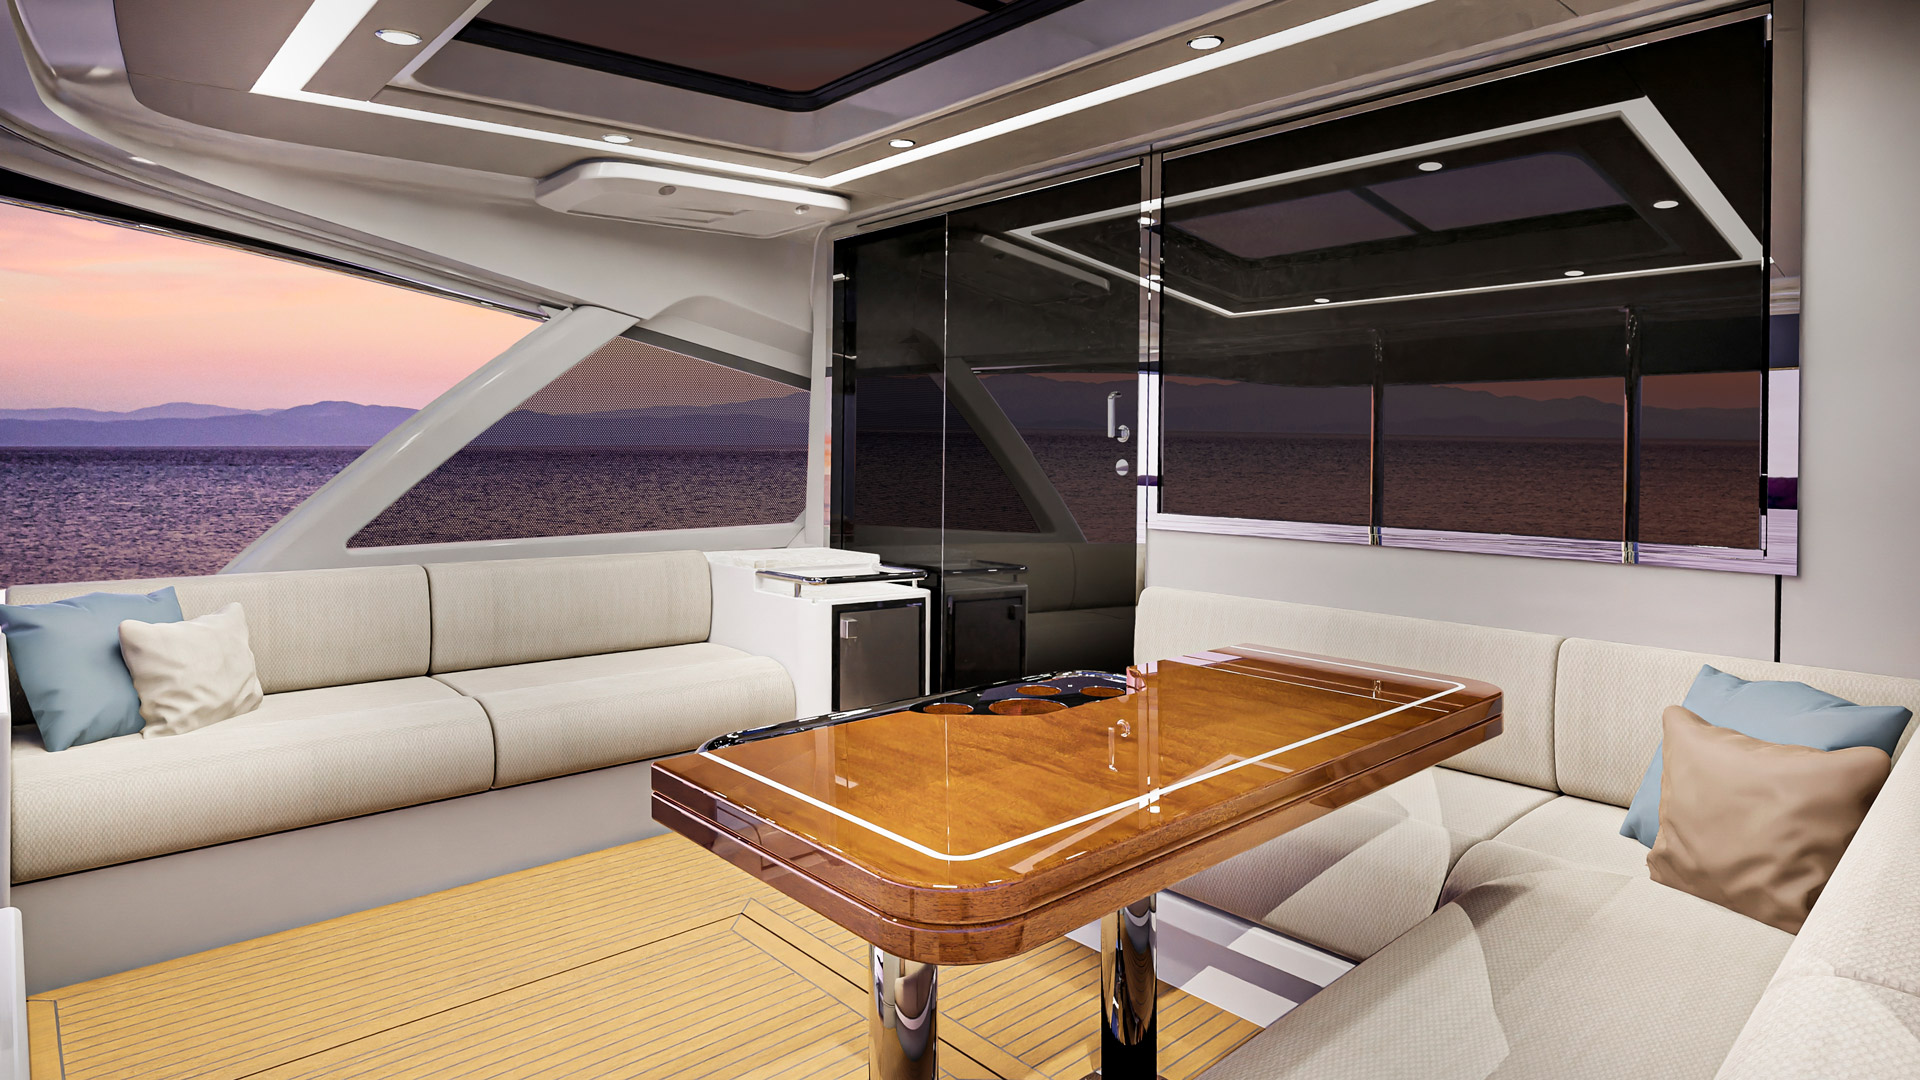 Riviera 645 SUV Alfresco 02 – Newport Edition shown with grey caulked teak